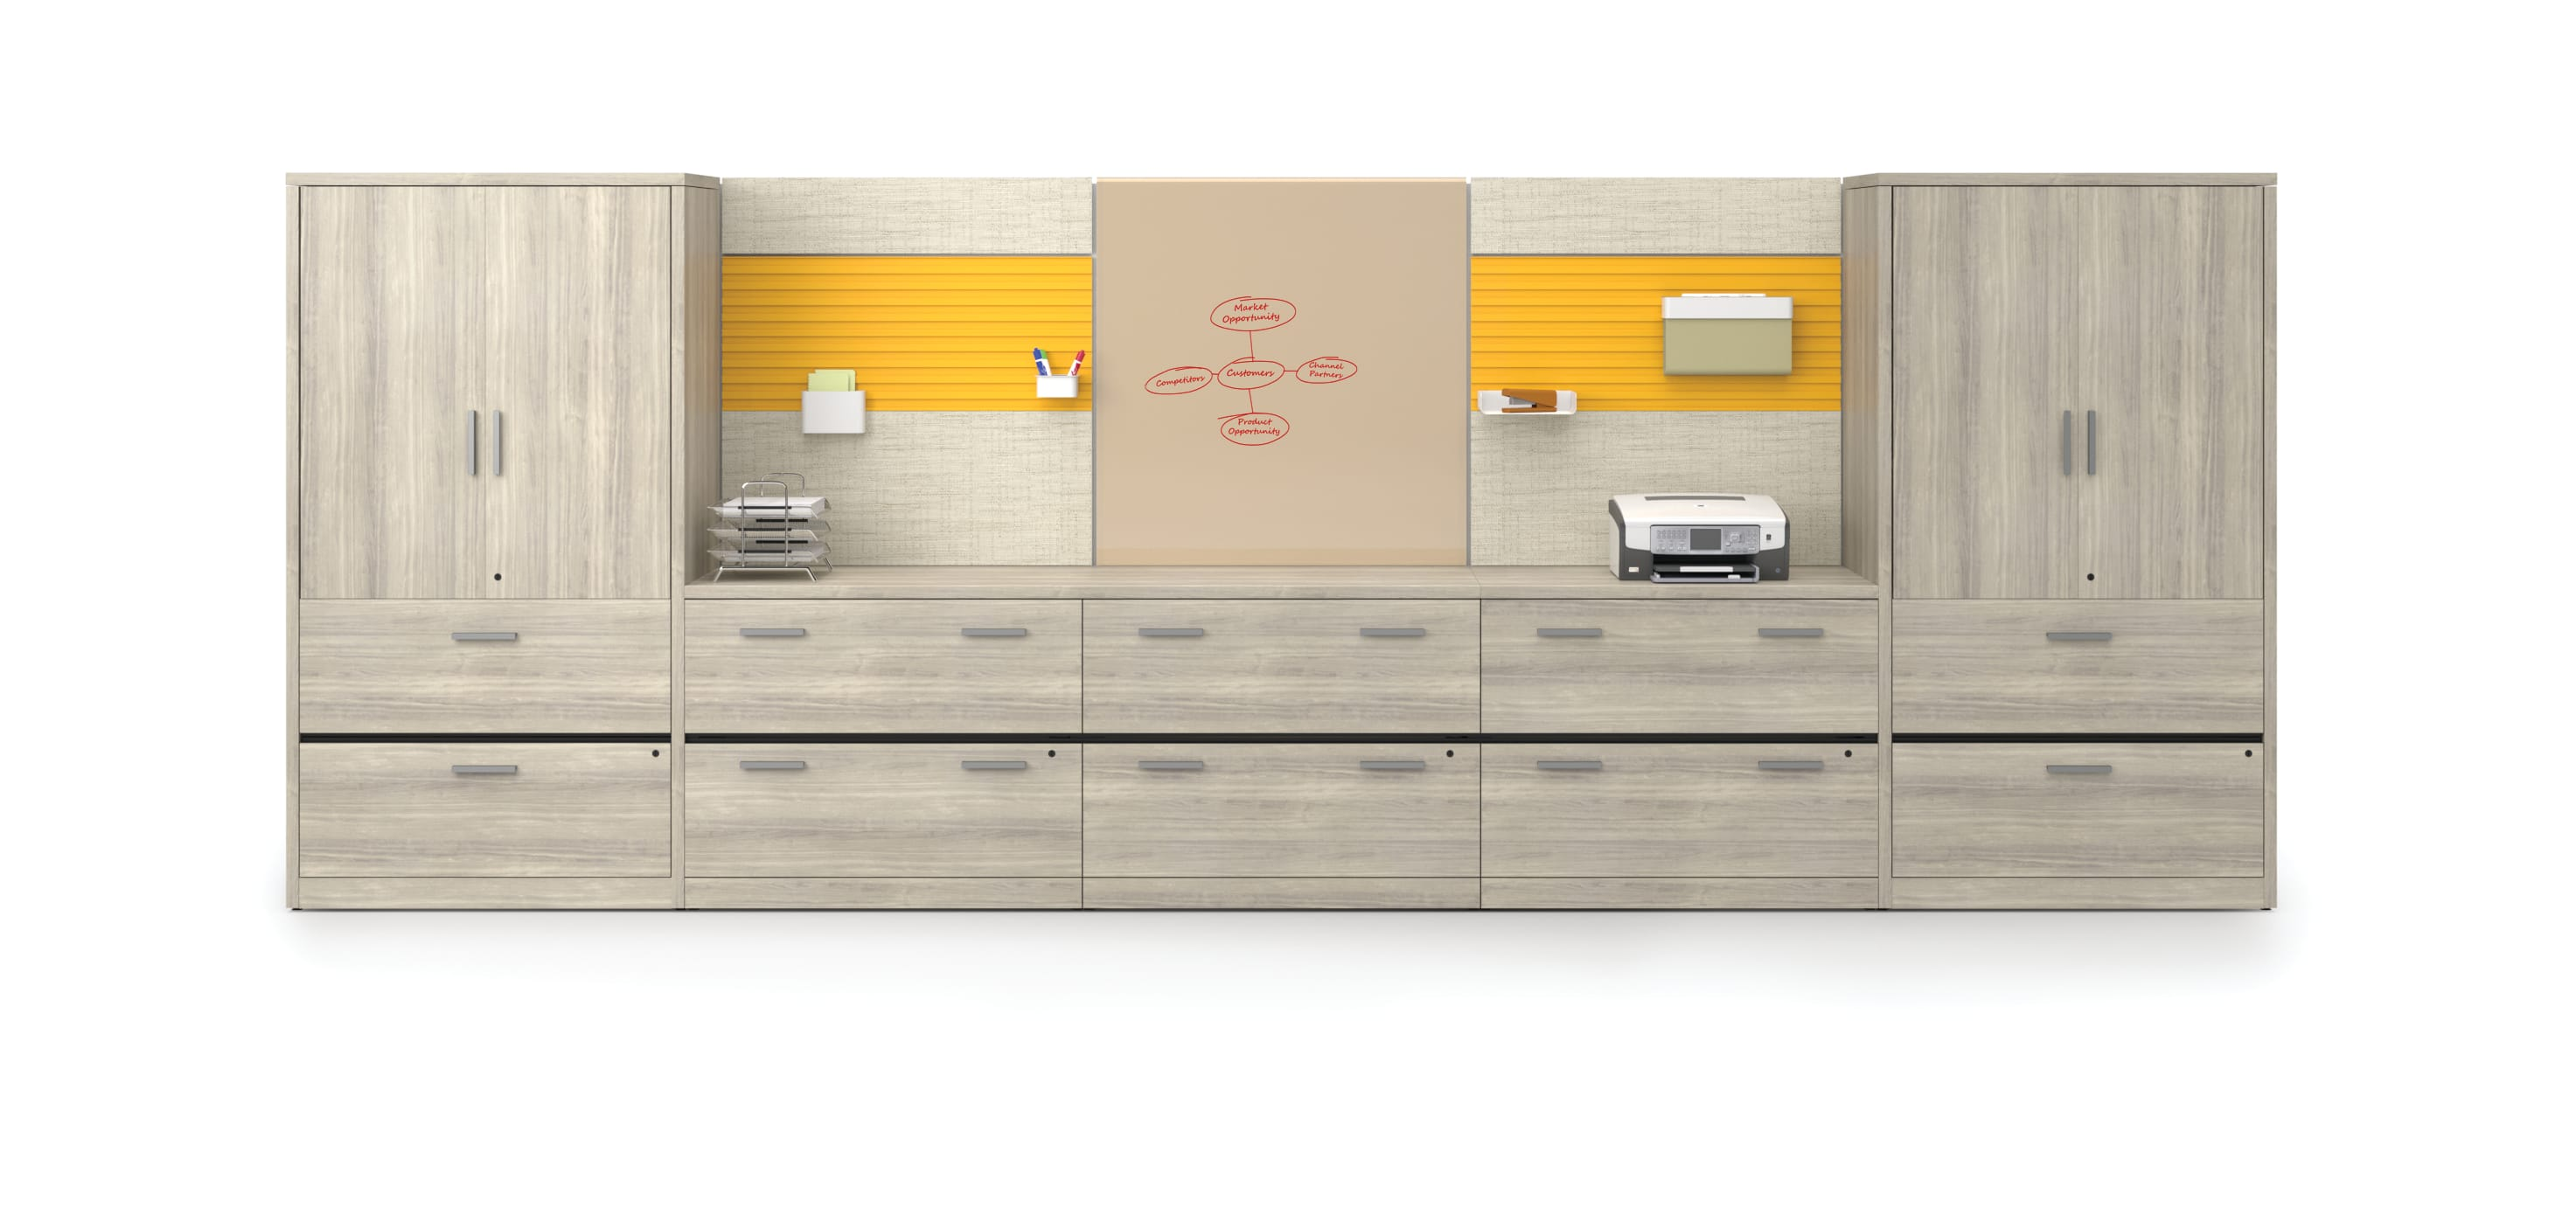 Yellow/tan 10500 Series storage wall with Workwall tiles